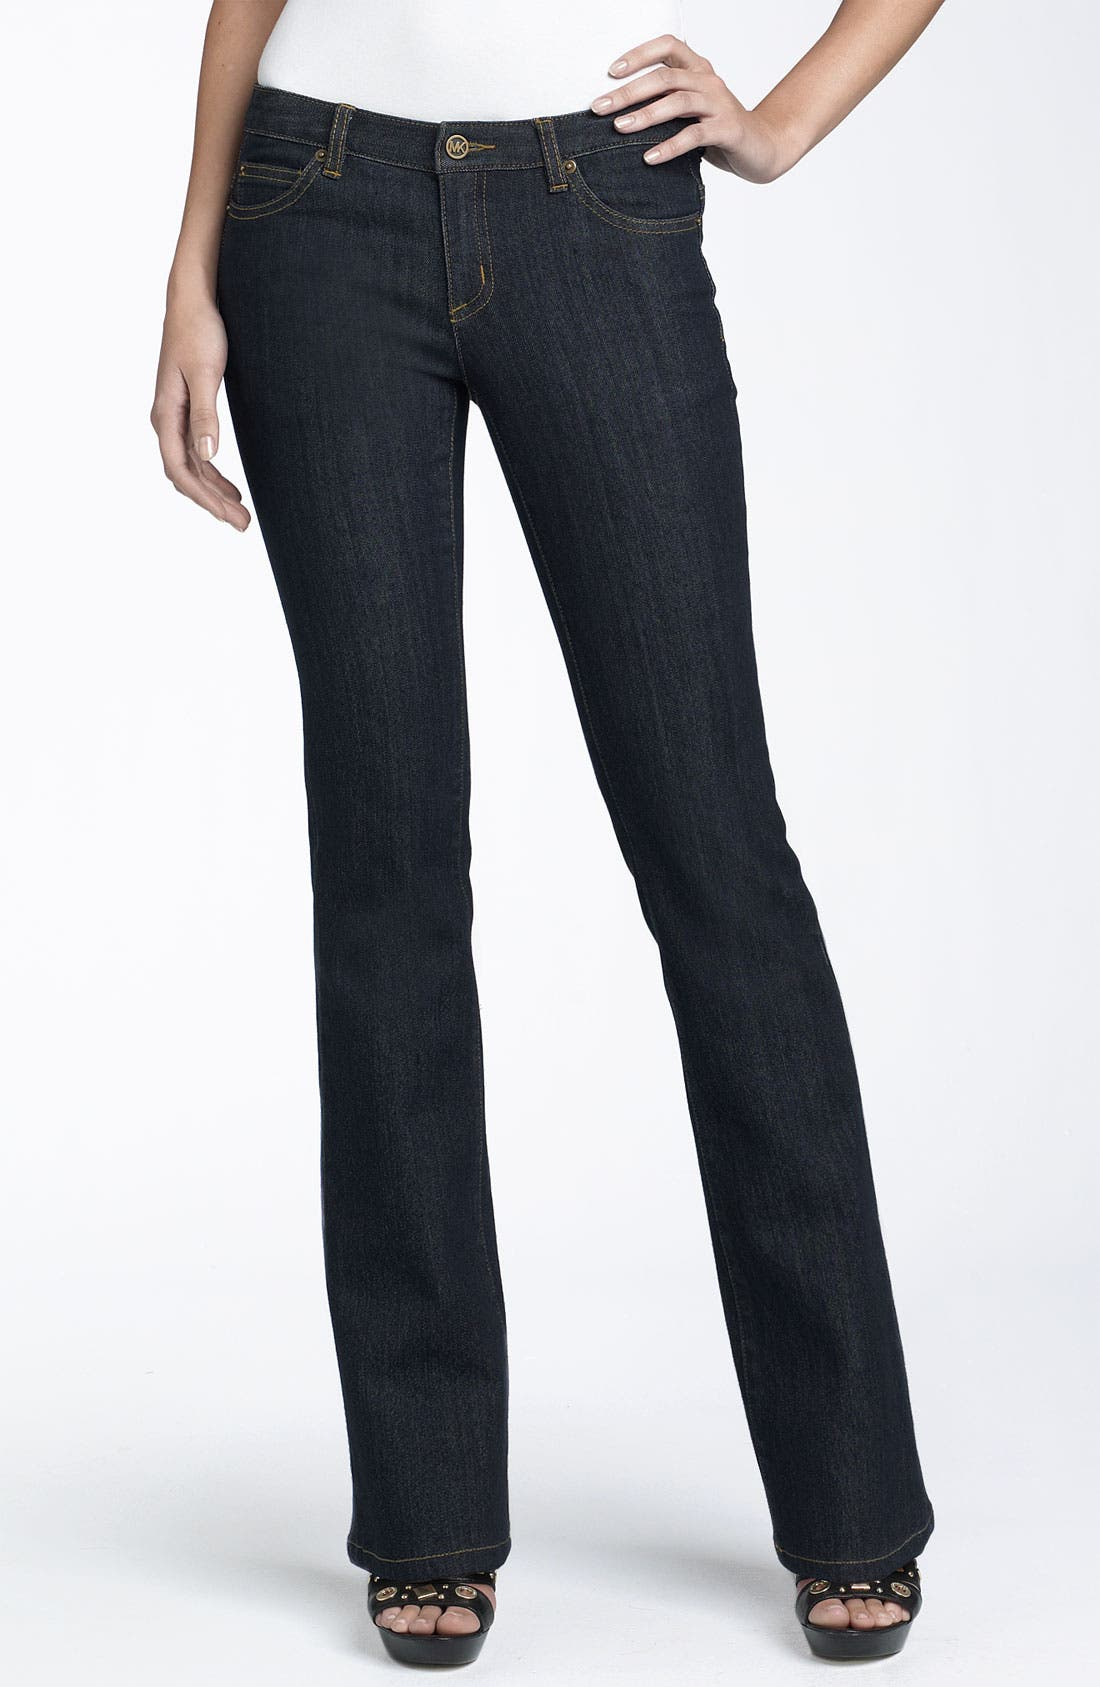 Main Image - MICHAEL Michael Kors 'Sausalito' Stretch Demin Flare Jeans (Petite)